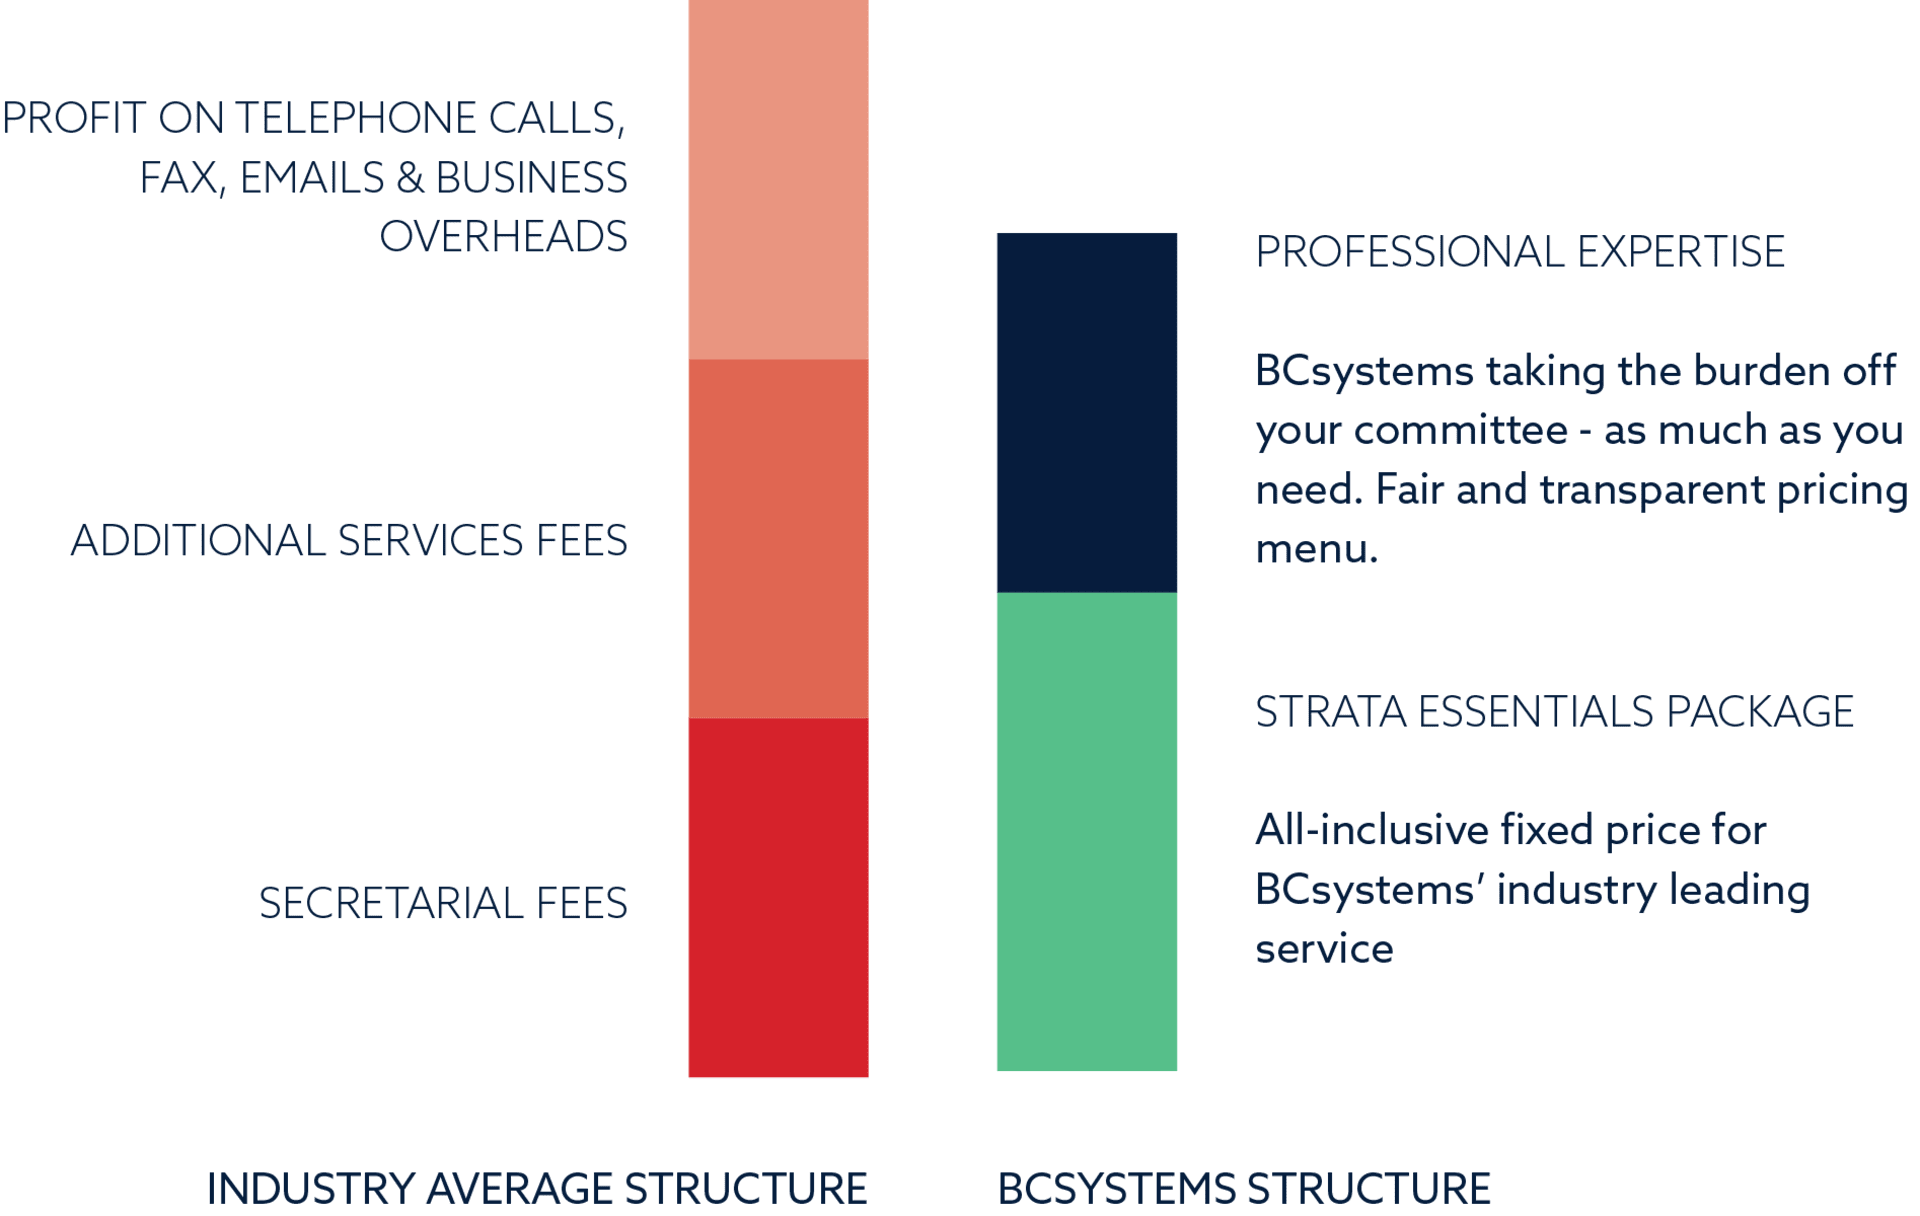 BCsystems Pricing Structure